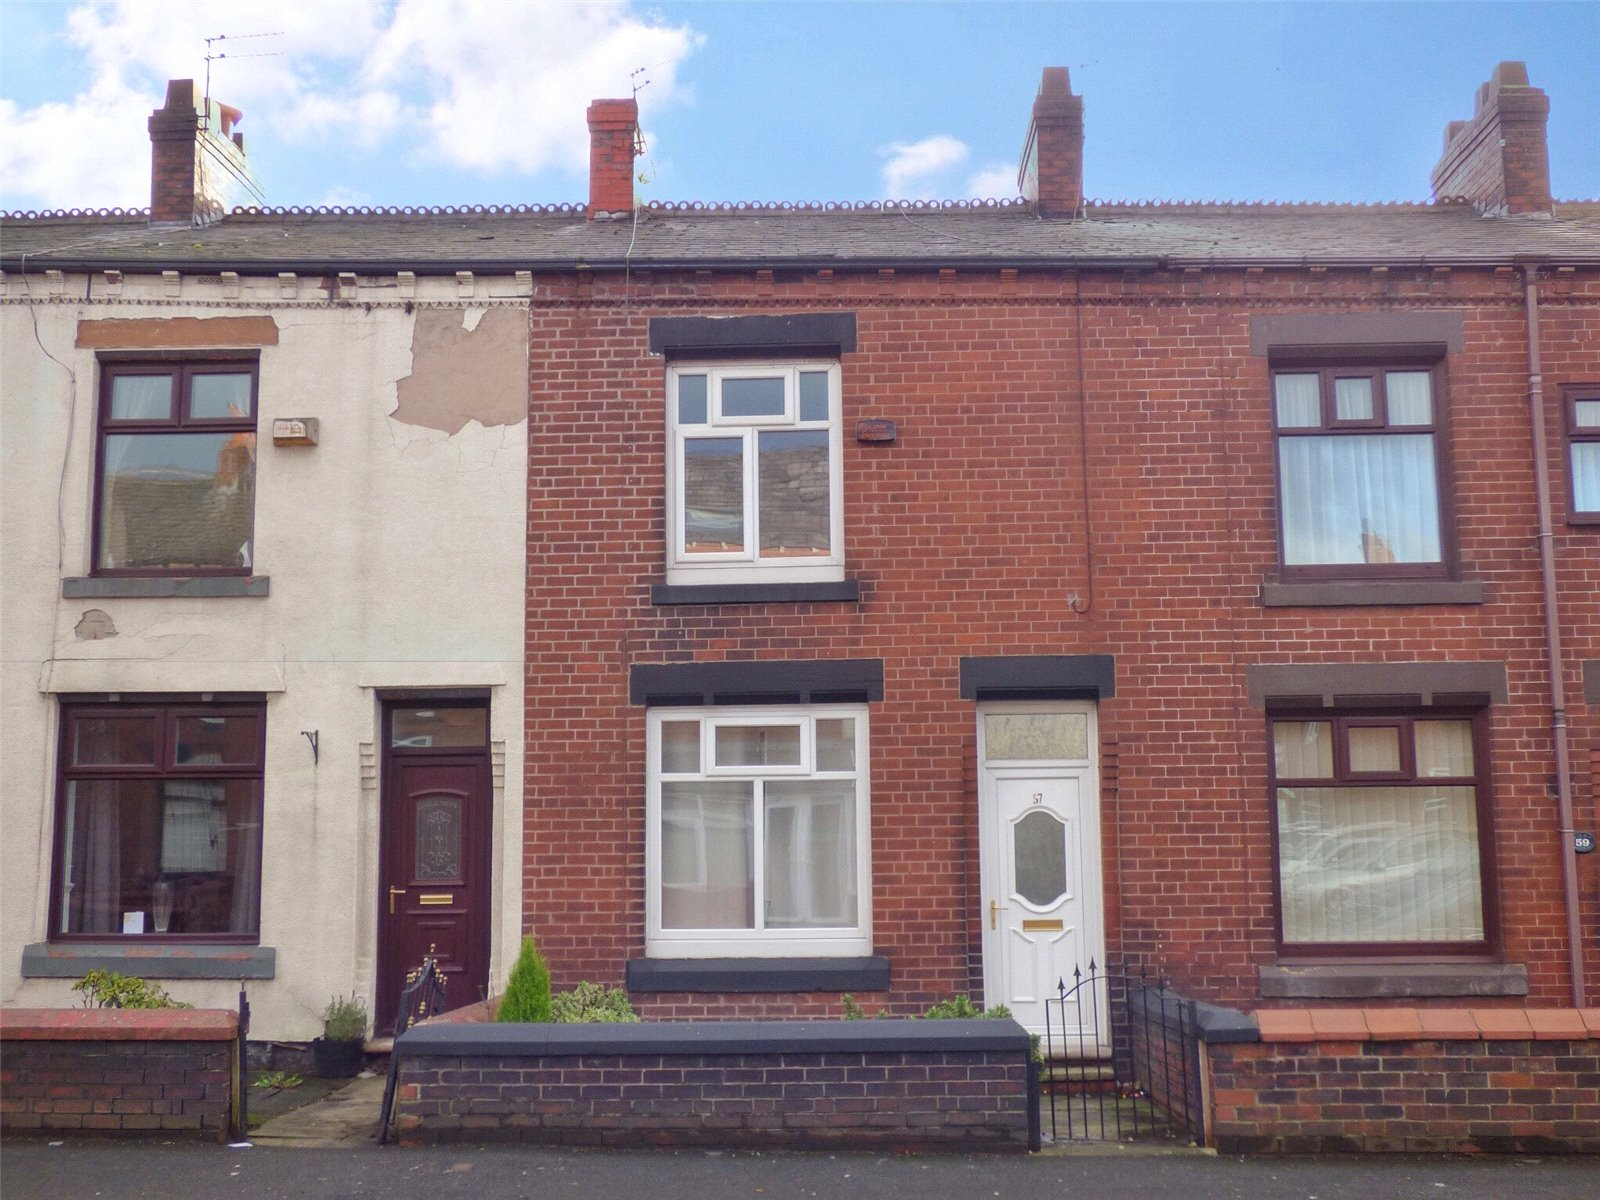 2 Bedrooms Terraced House for sale in Thompson Lane, South Chadderton, Oldham, Greater Manchester, OL9